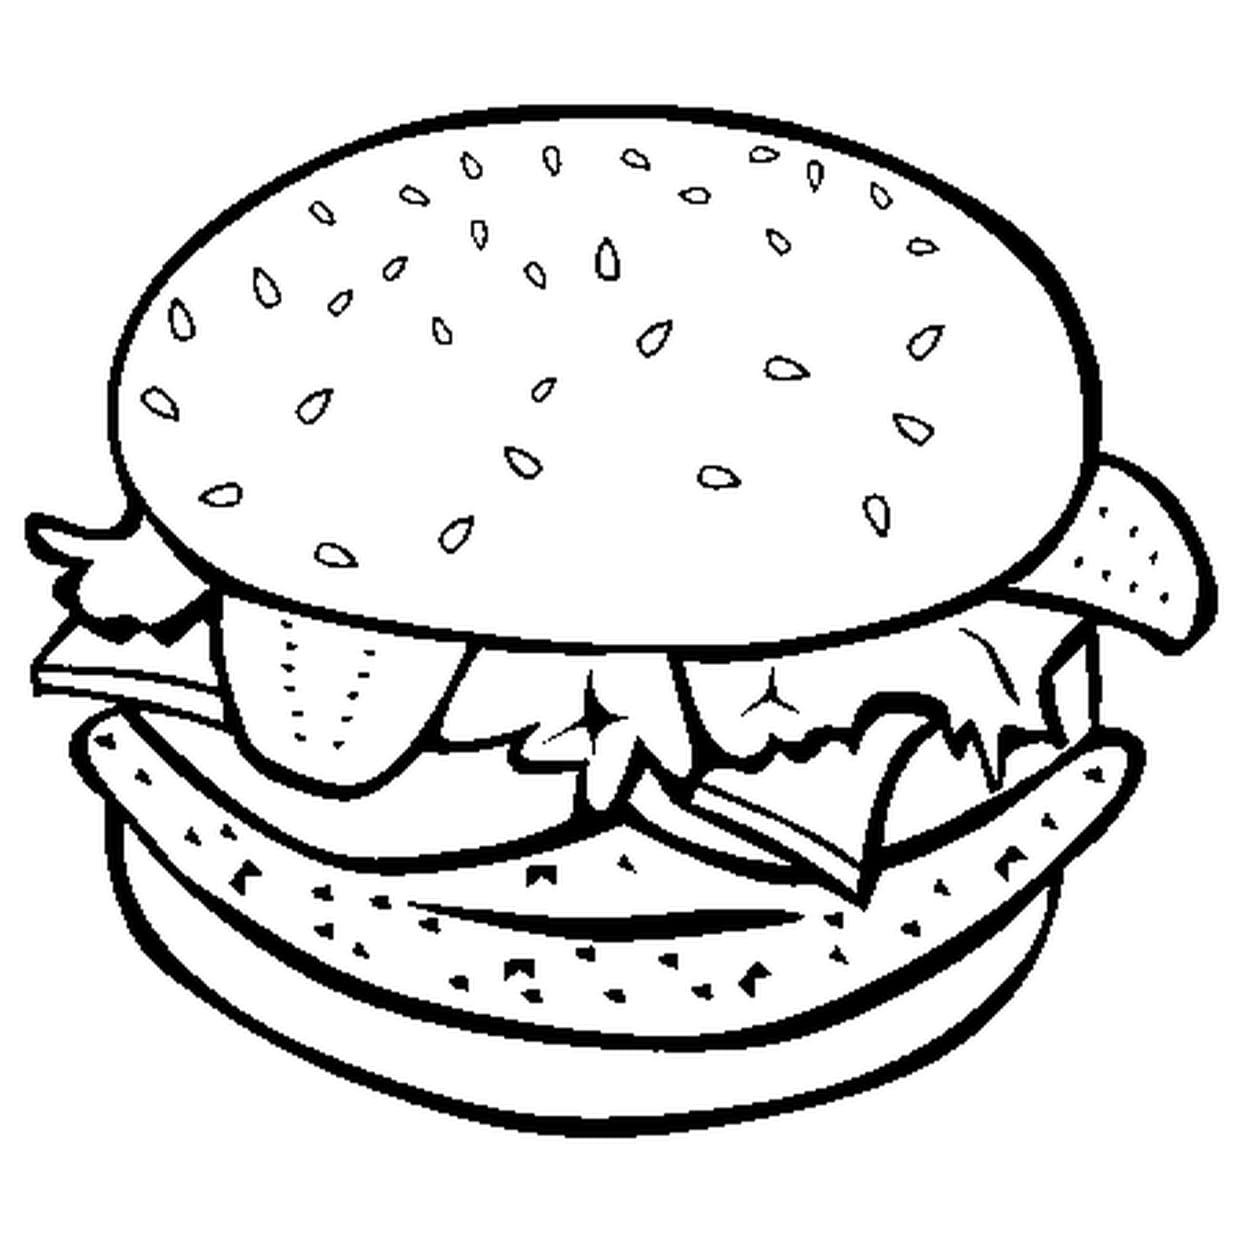 Charmant Coloriage Hamburger 50 sur Coloriage Inspiration with Coloriage Hamburger